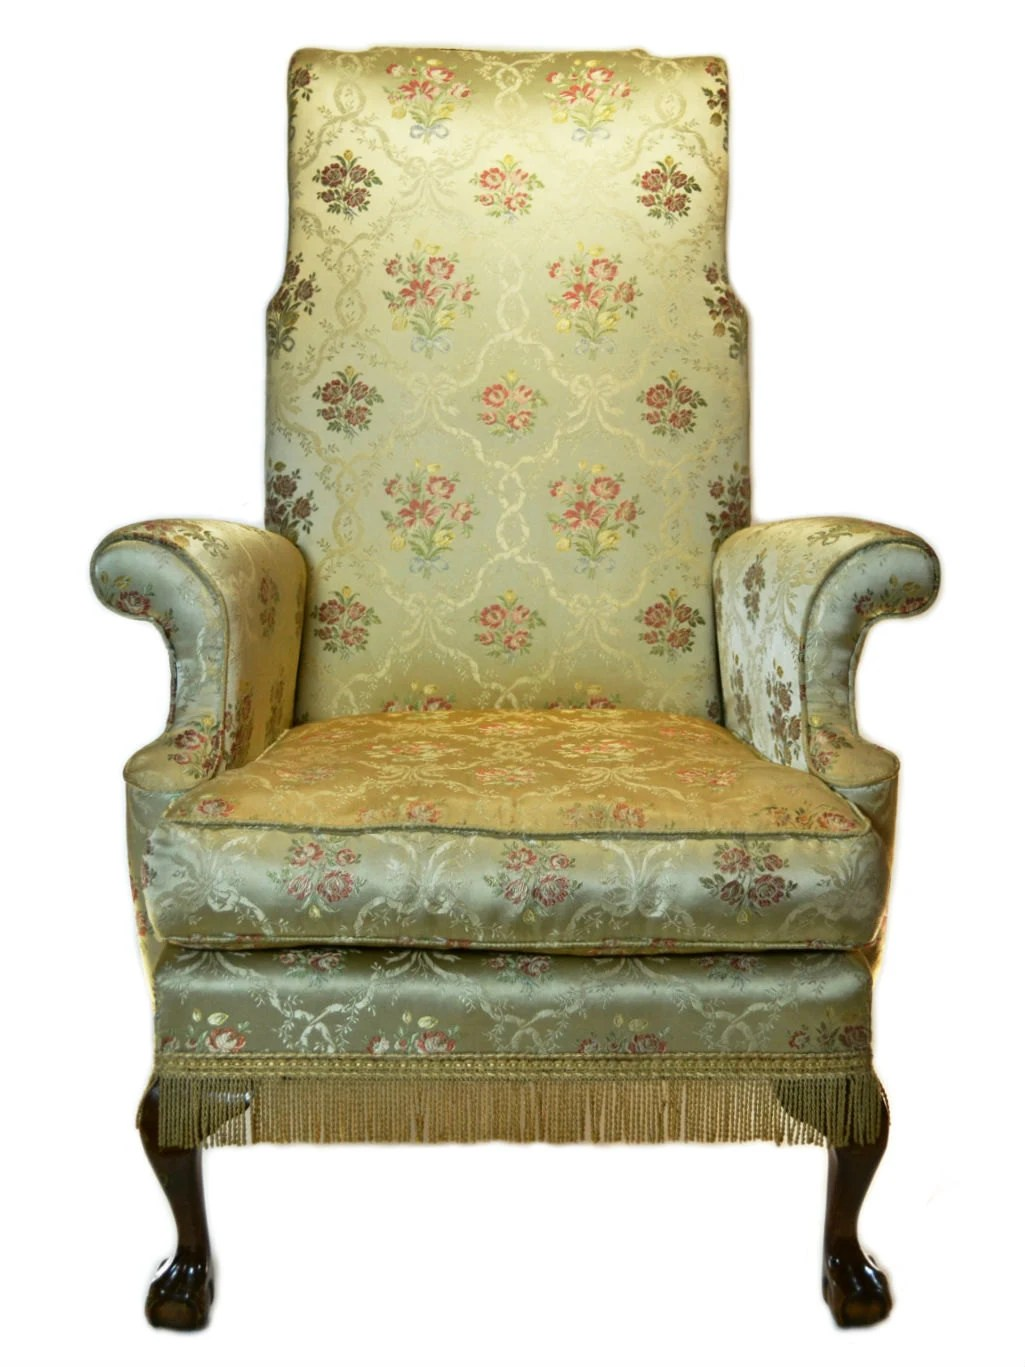 Cosy upholstered wing armchair vintage english 1920s for Cosy armchair